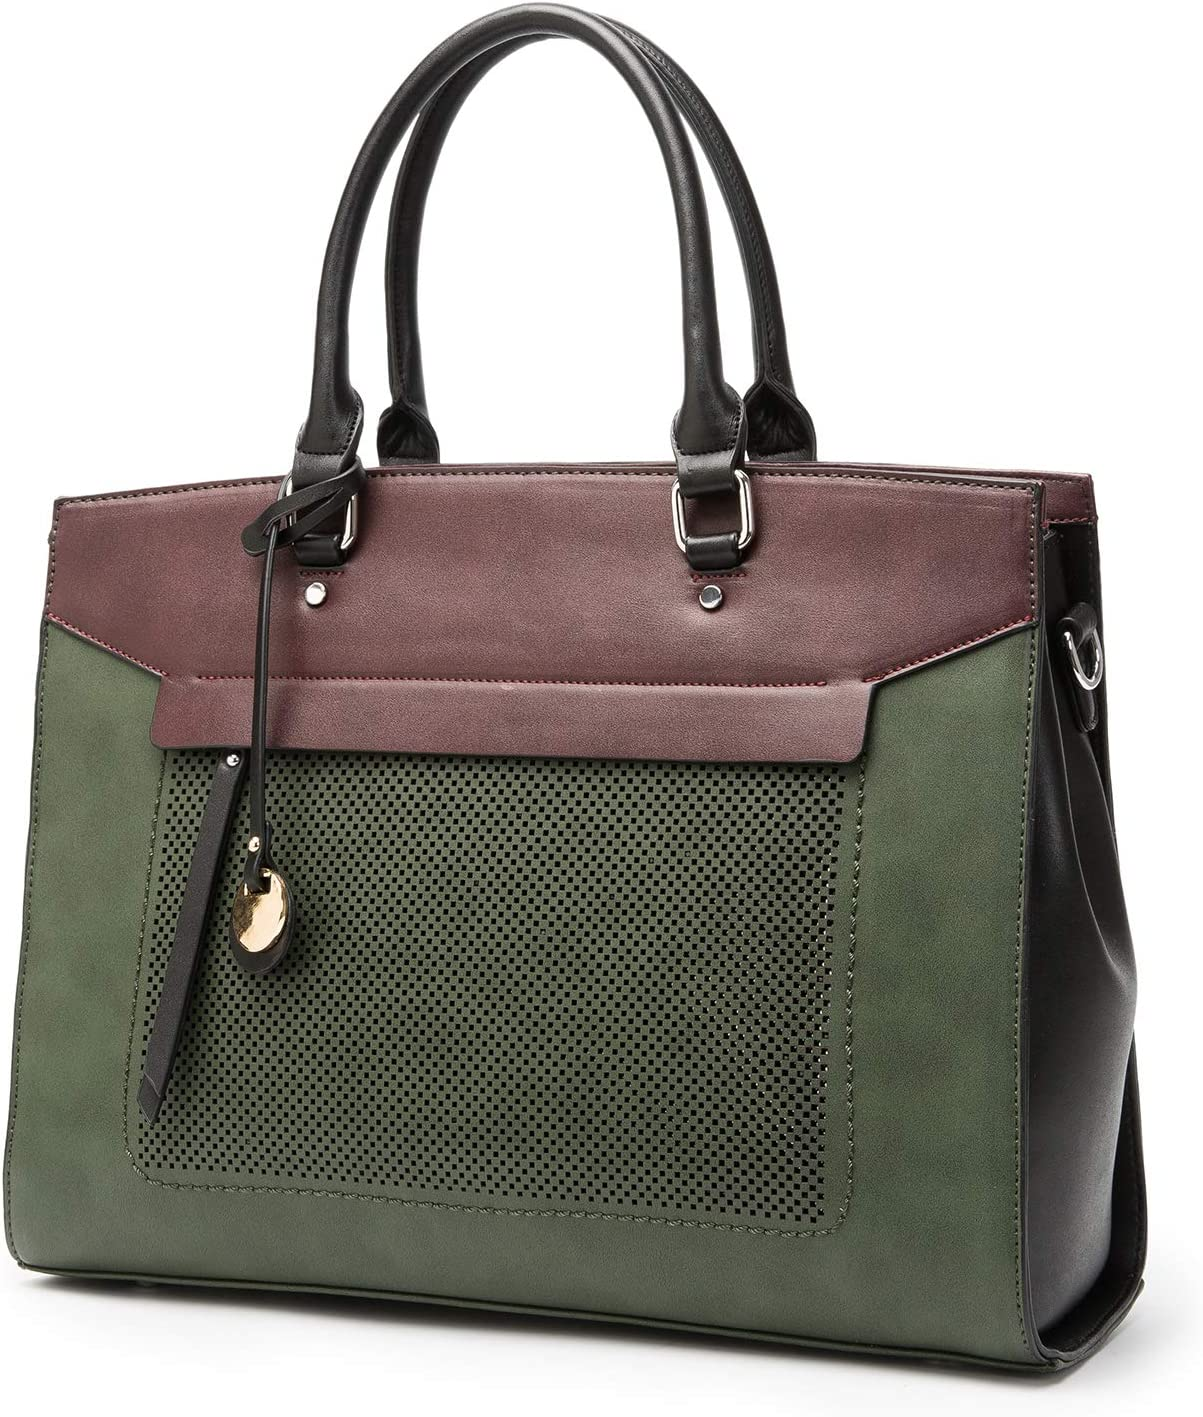 Two Flowers Laptop Tote Bag - Fits 15 Inch Laptop Large Tote Bag Briefcase for Carrying Case Tote Bag (Green)